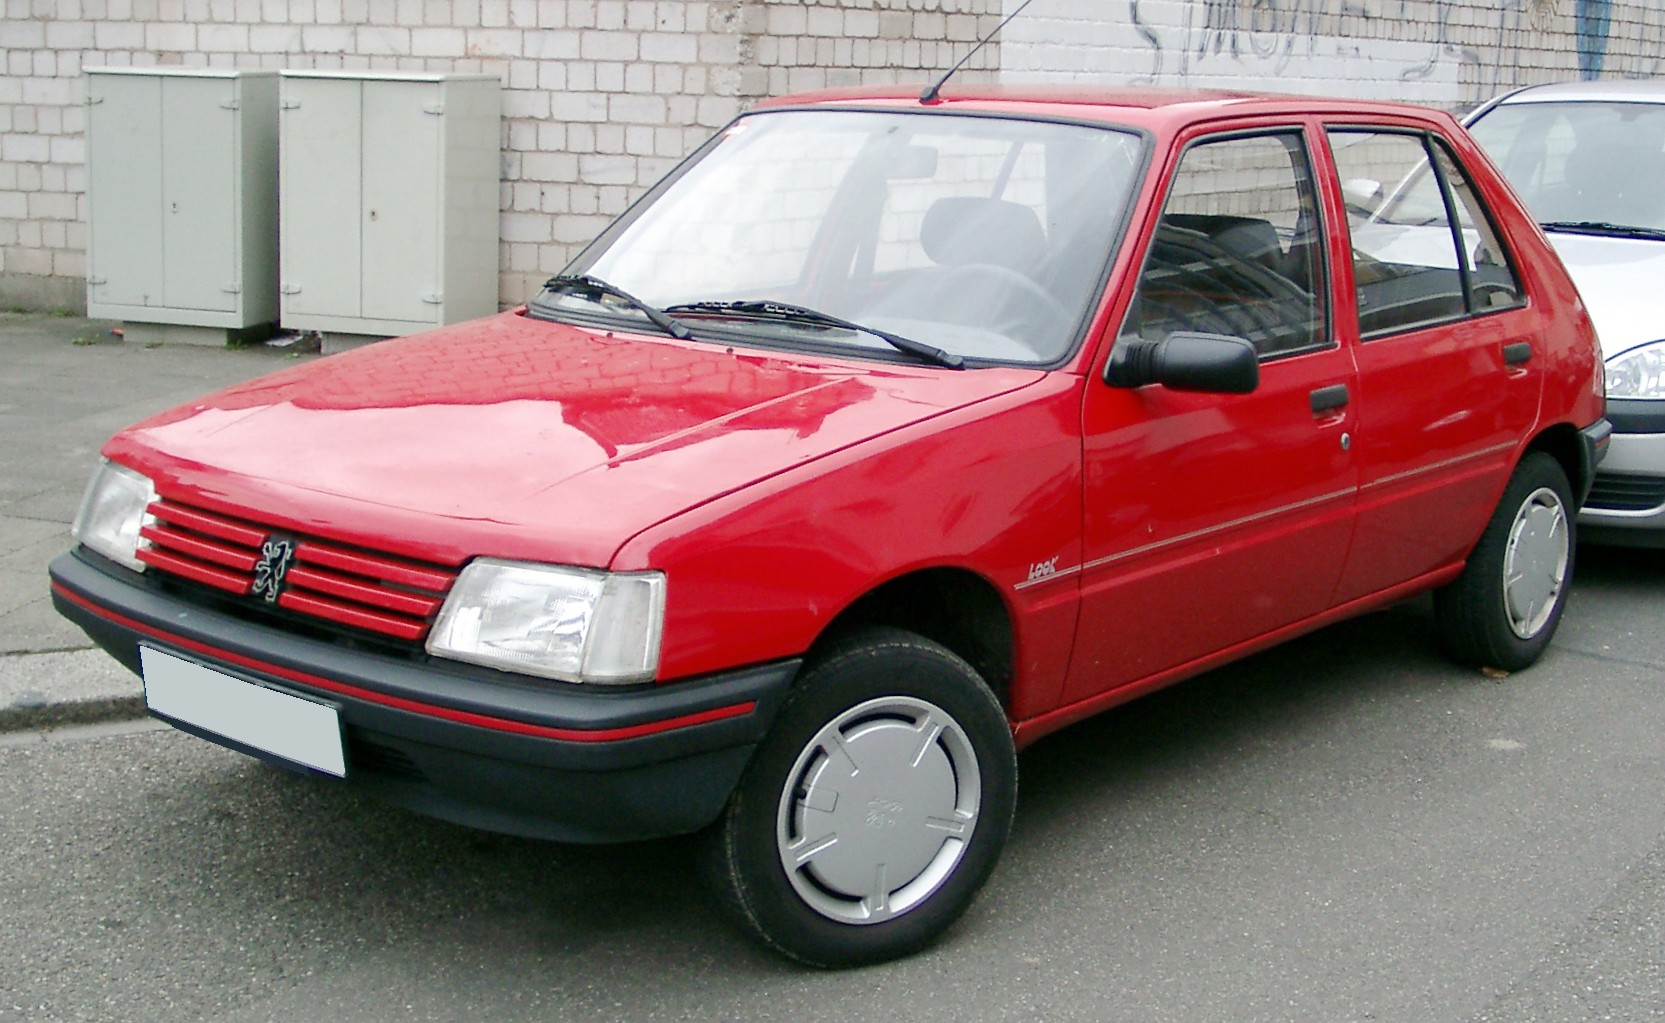 File:Peugeot 205 front 20080121.jpg - Wikipedia, the free encyclopedia